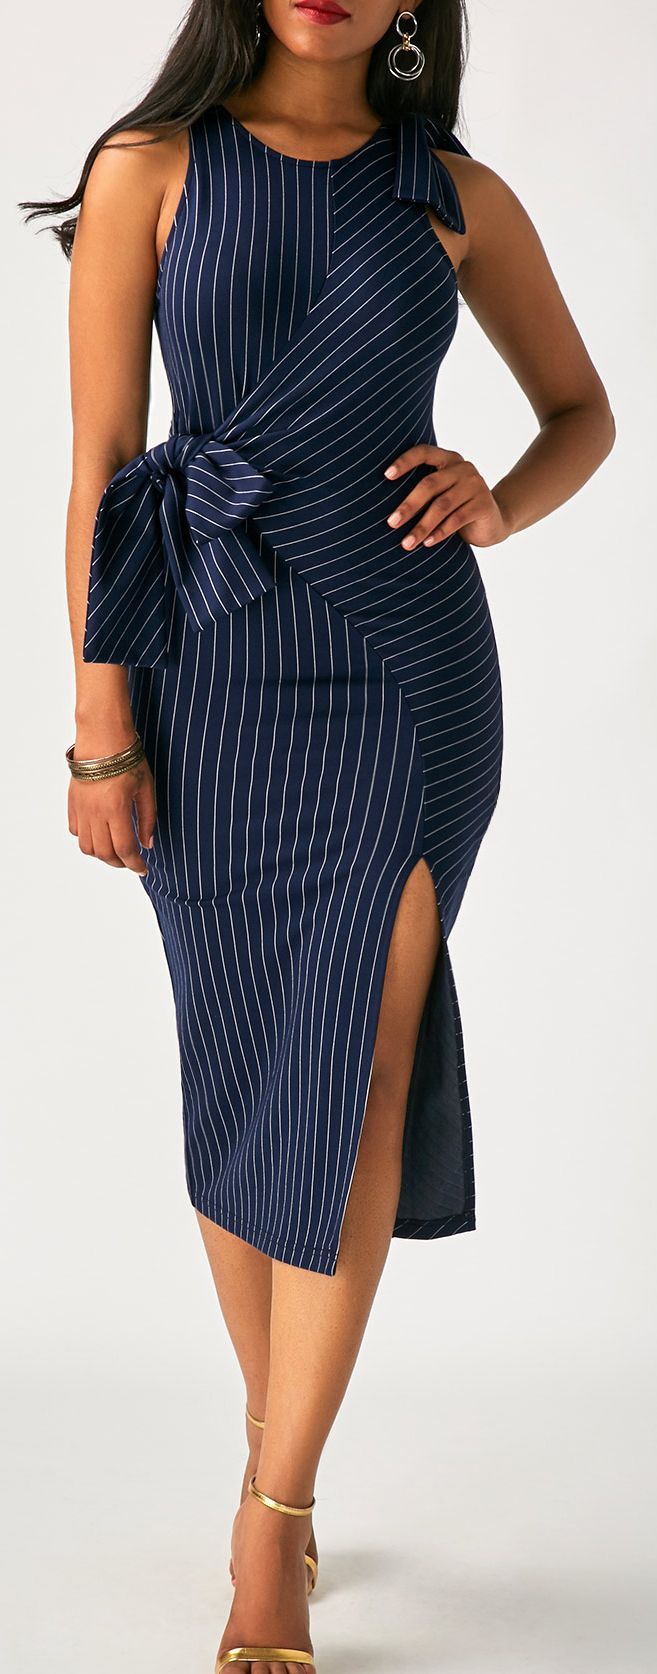 Top 25 Best Navy Pinstripe Suit Ideas On Pinterest Blue